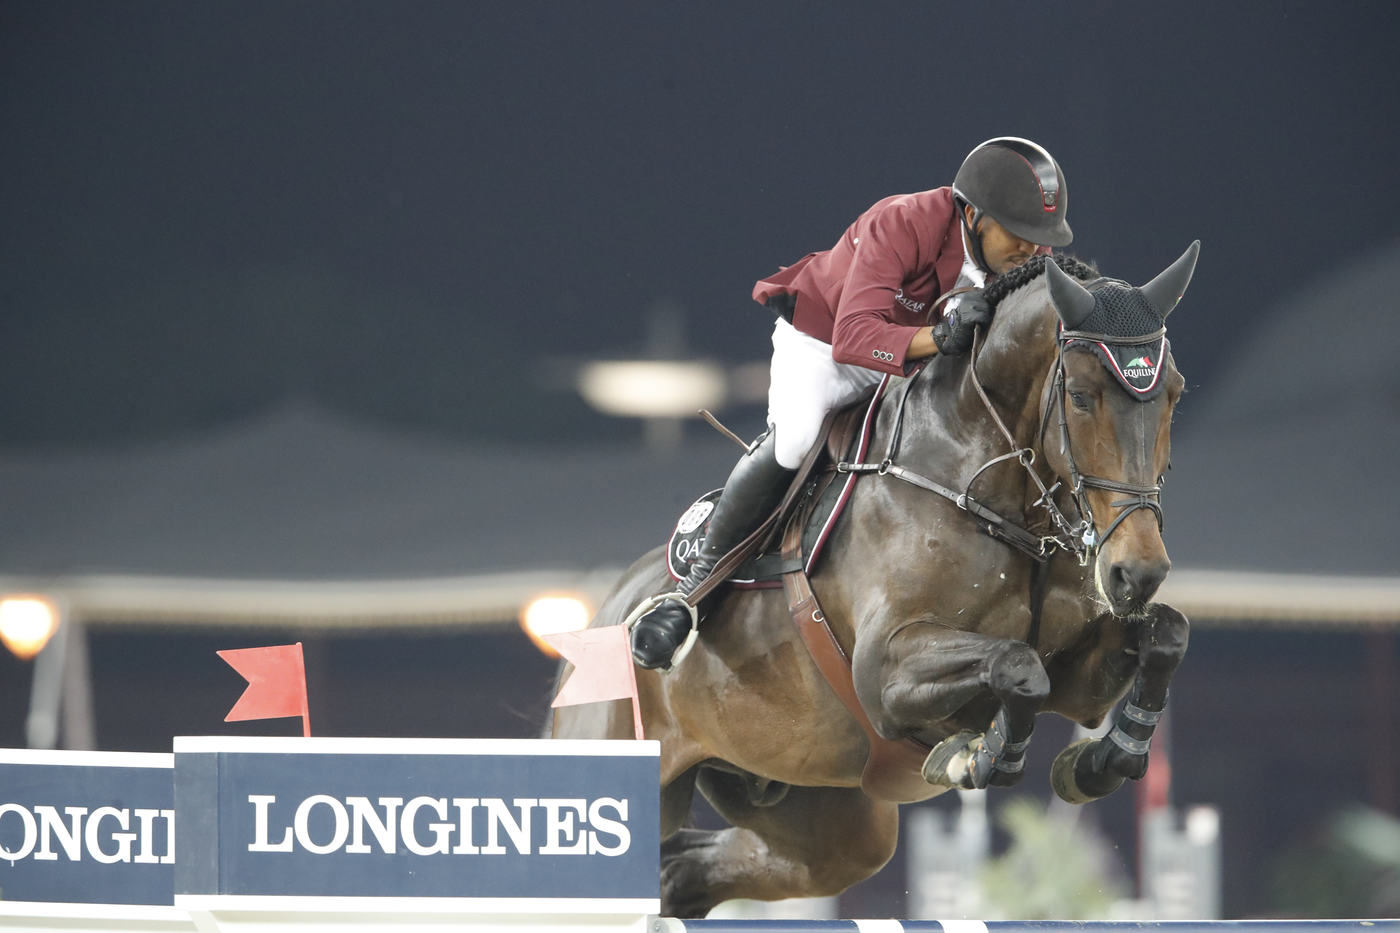 Longines Show Jumping Event: Qatari victory at the 2017 Longines Global Champions Tour in Doha 2